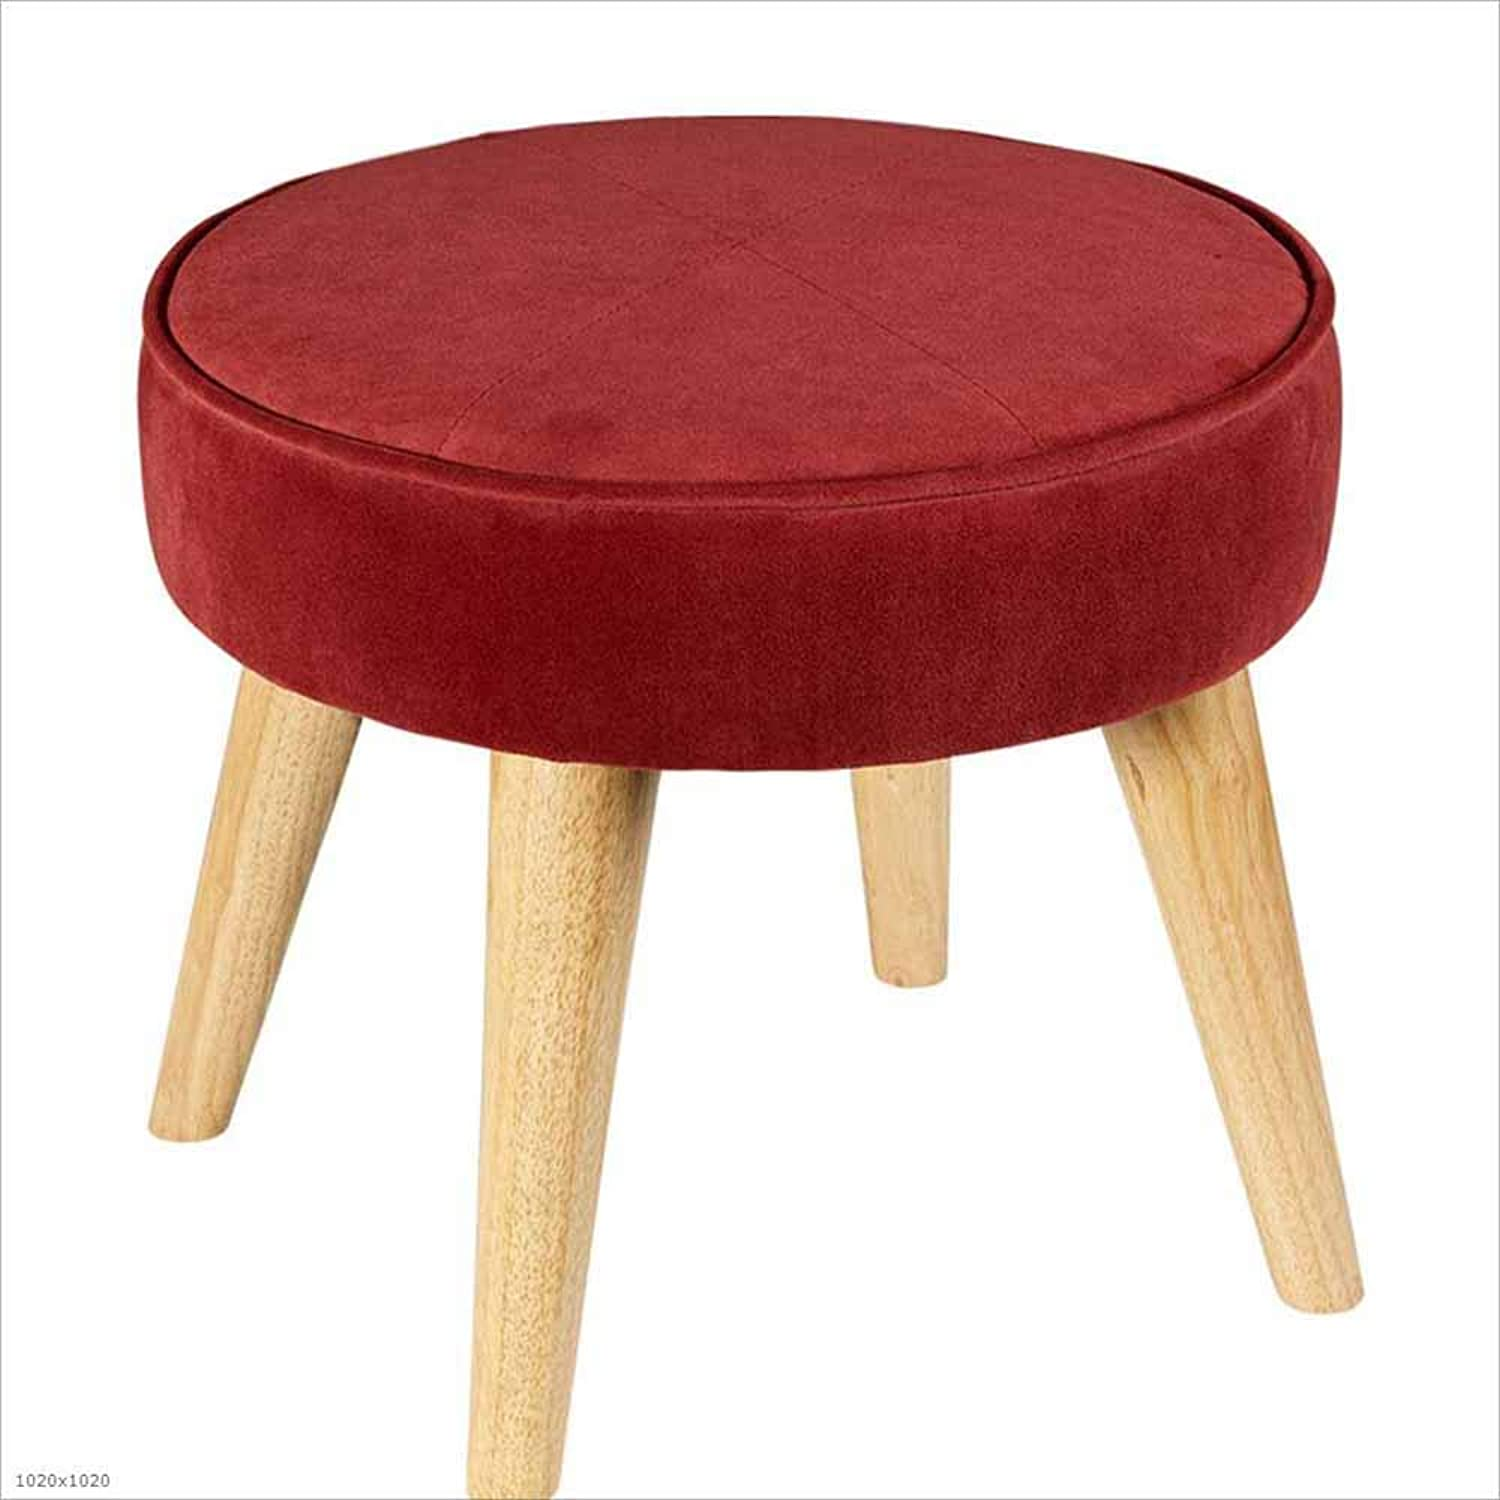 Sofa Stool Fabric Removable and Washable shoes Stool Solid Wood Footstool Low Foot Small Stool 40×36Cm, 4